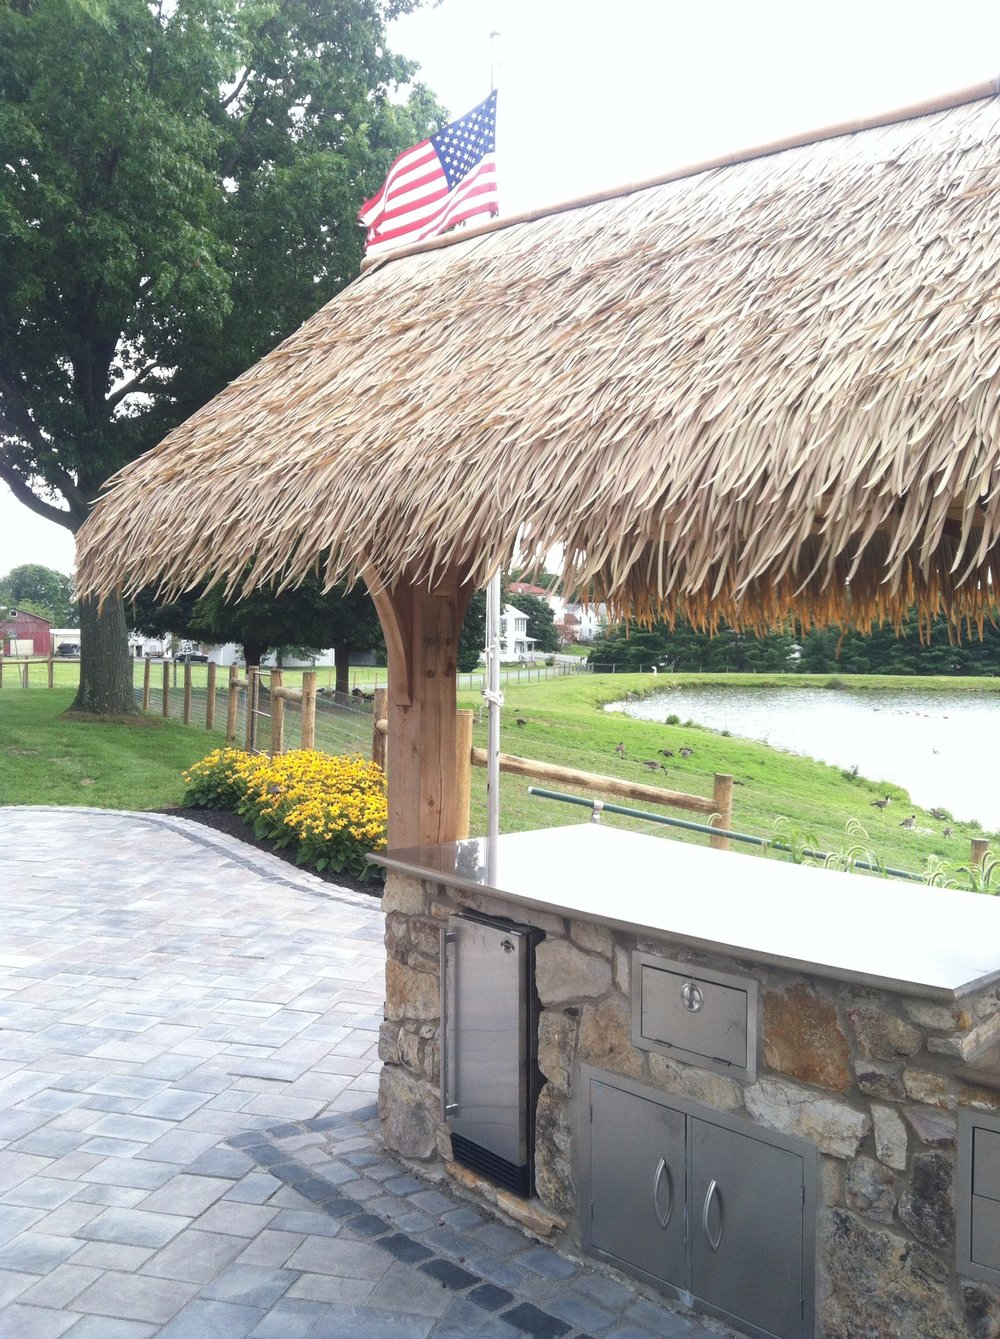 Experienced landscaping pavers inLehigh county, PA